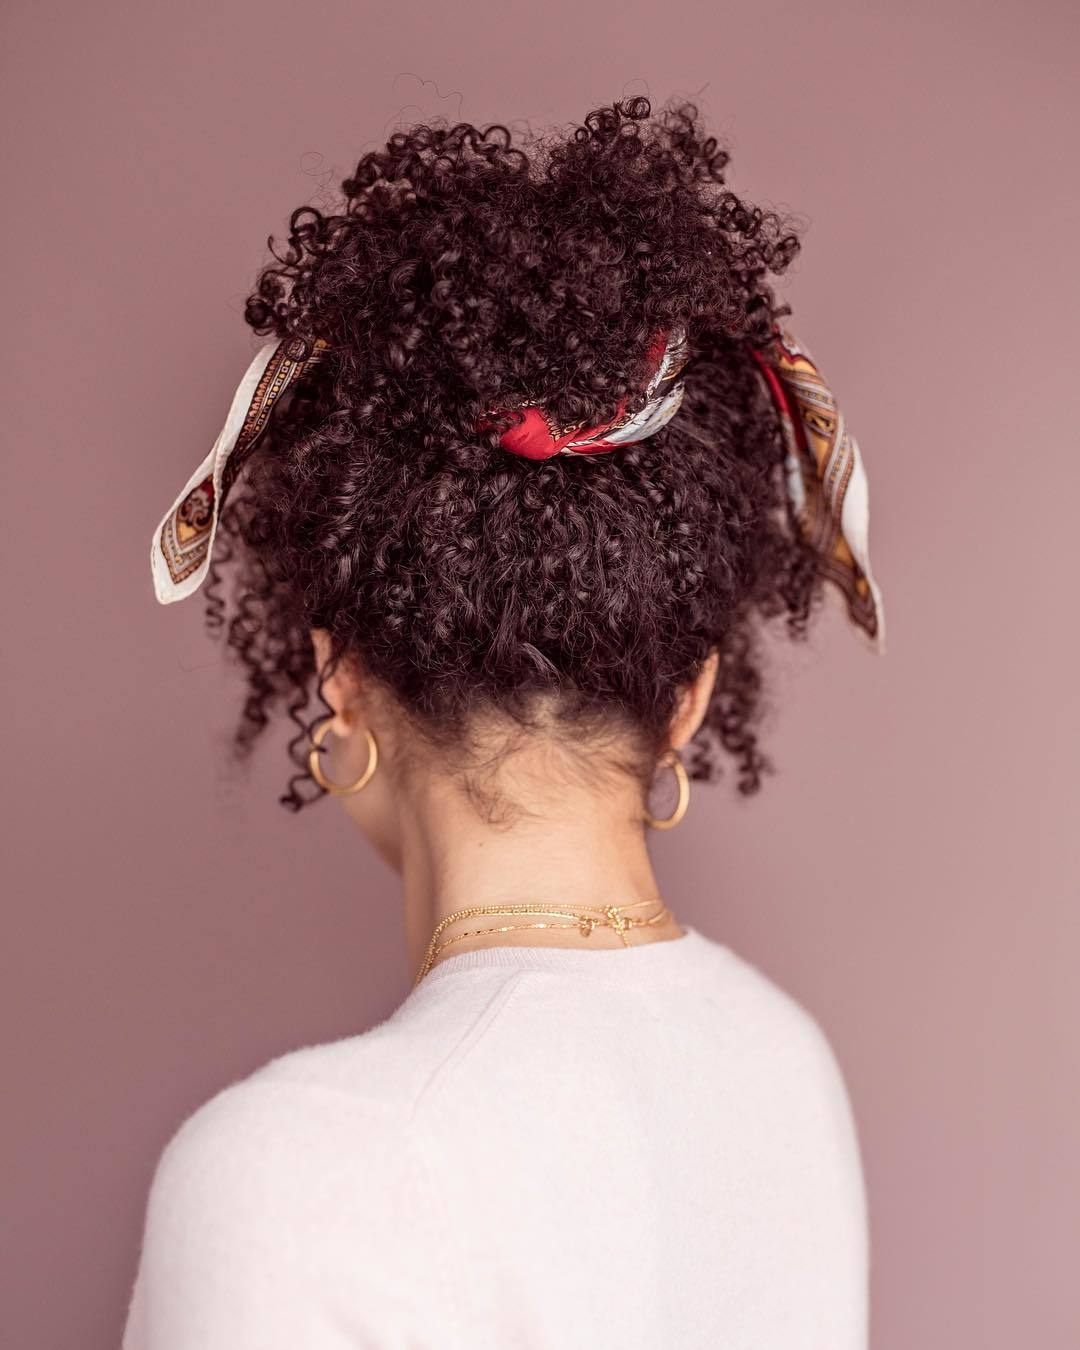 Bandana hairstyles: Woman with natural curly brown hair styled into a pineapple with bandana around it